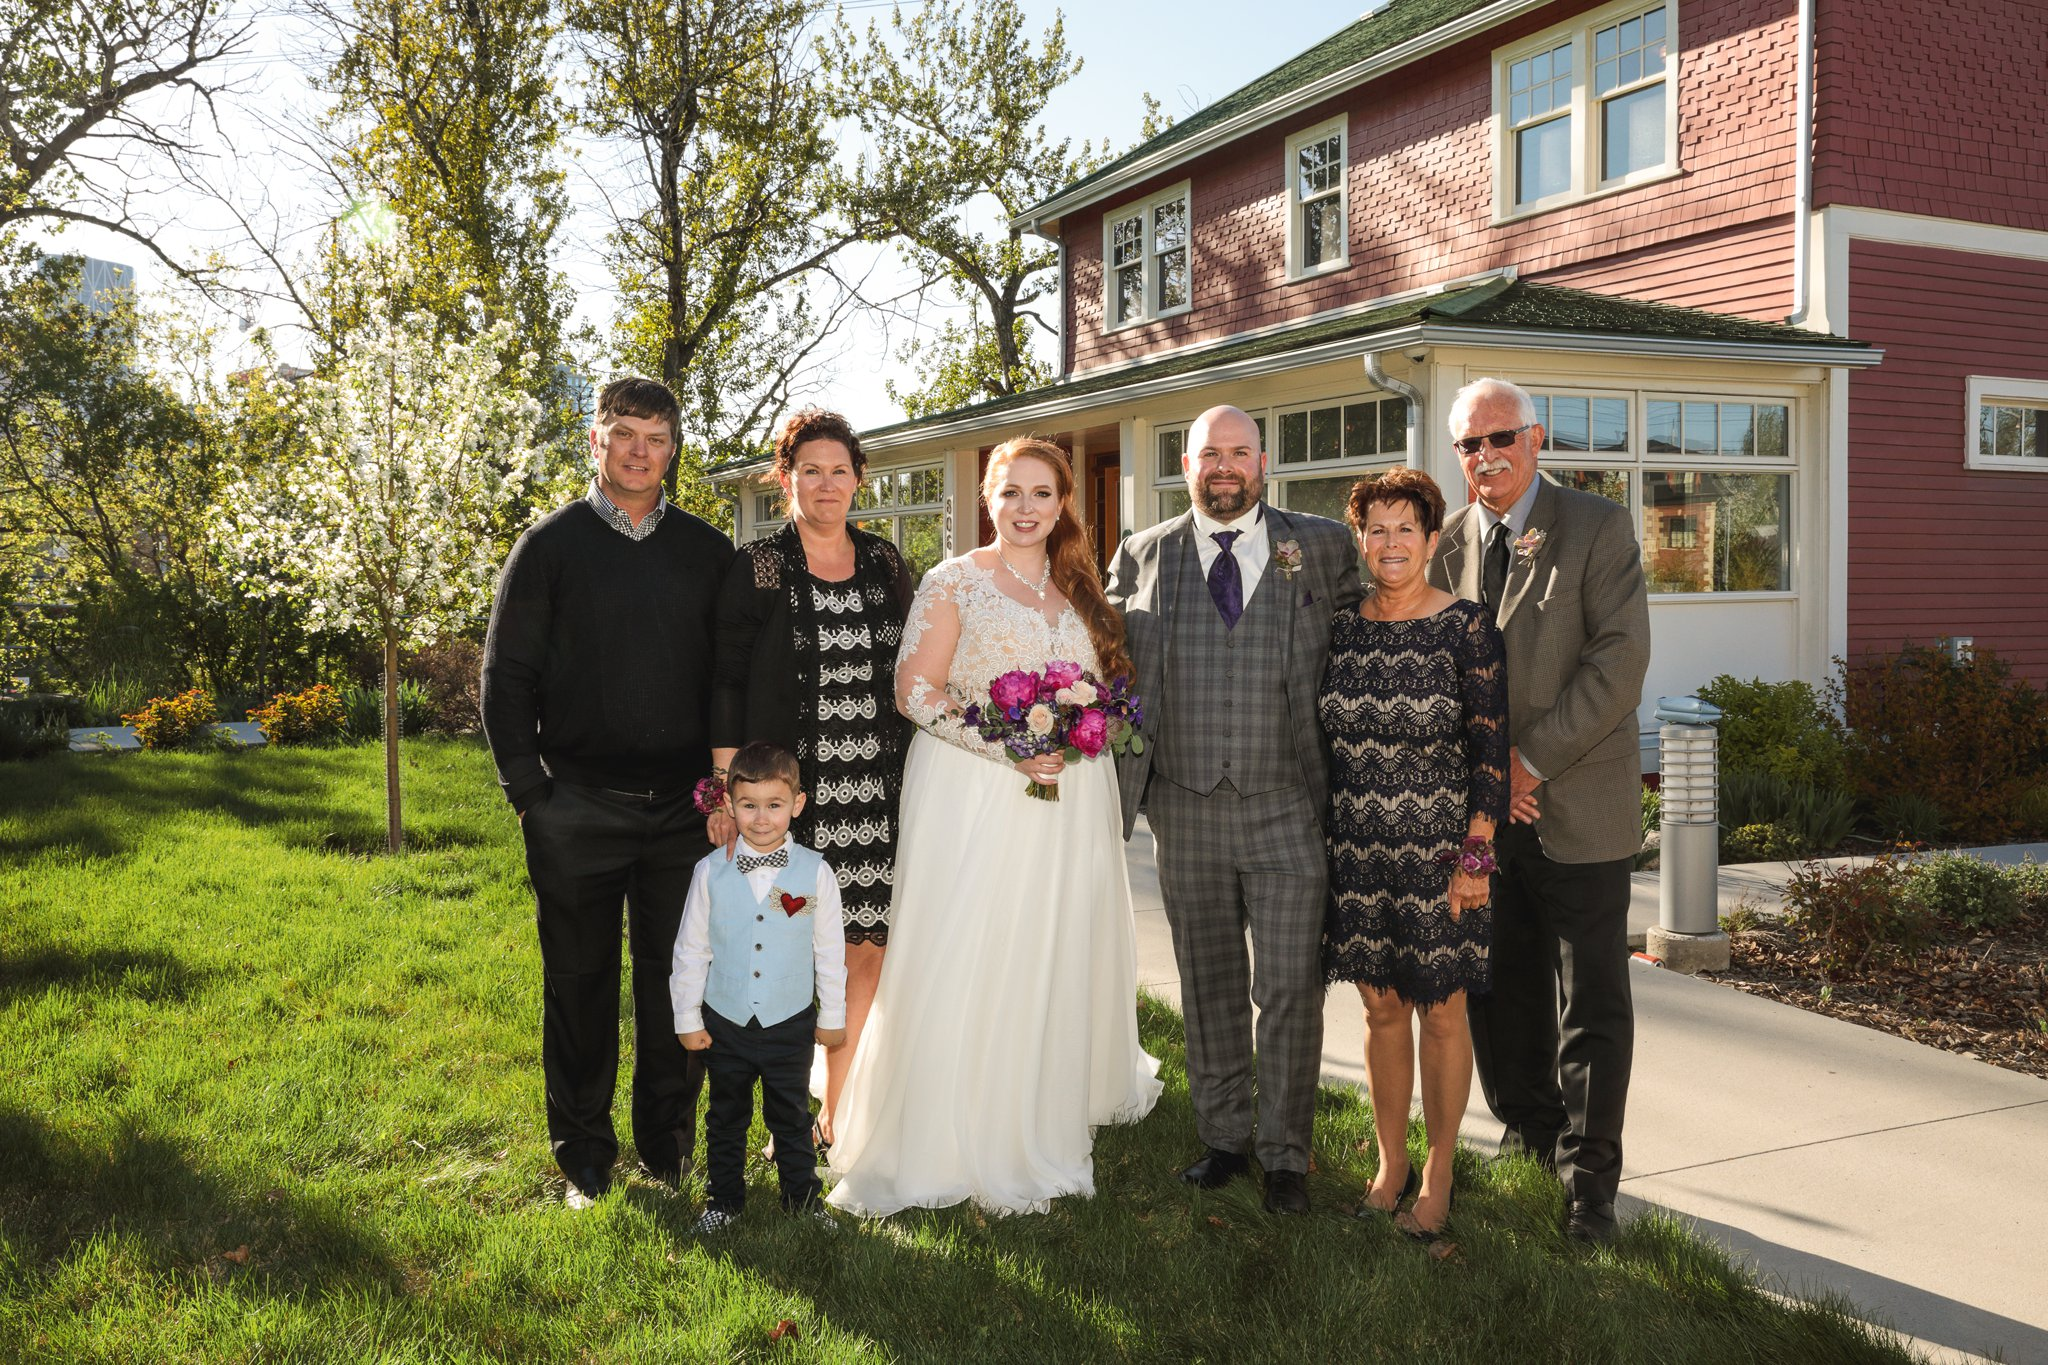 AshleyDaphnePhotography Calgary Wedding Photographer Rouge Inglewood Bride Groom Photography_0150.jpg